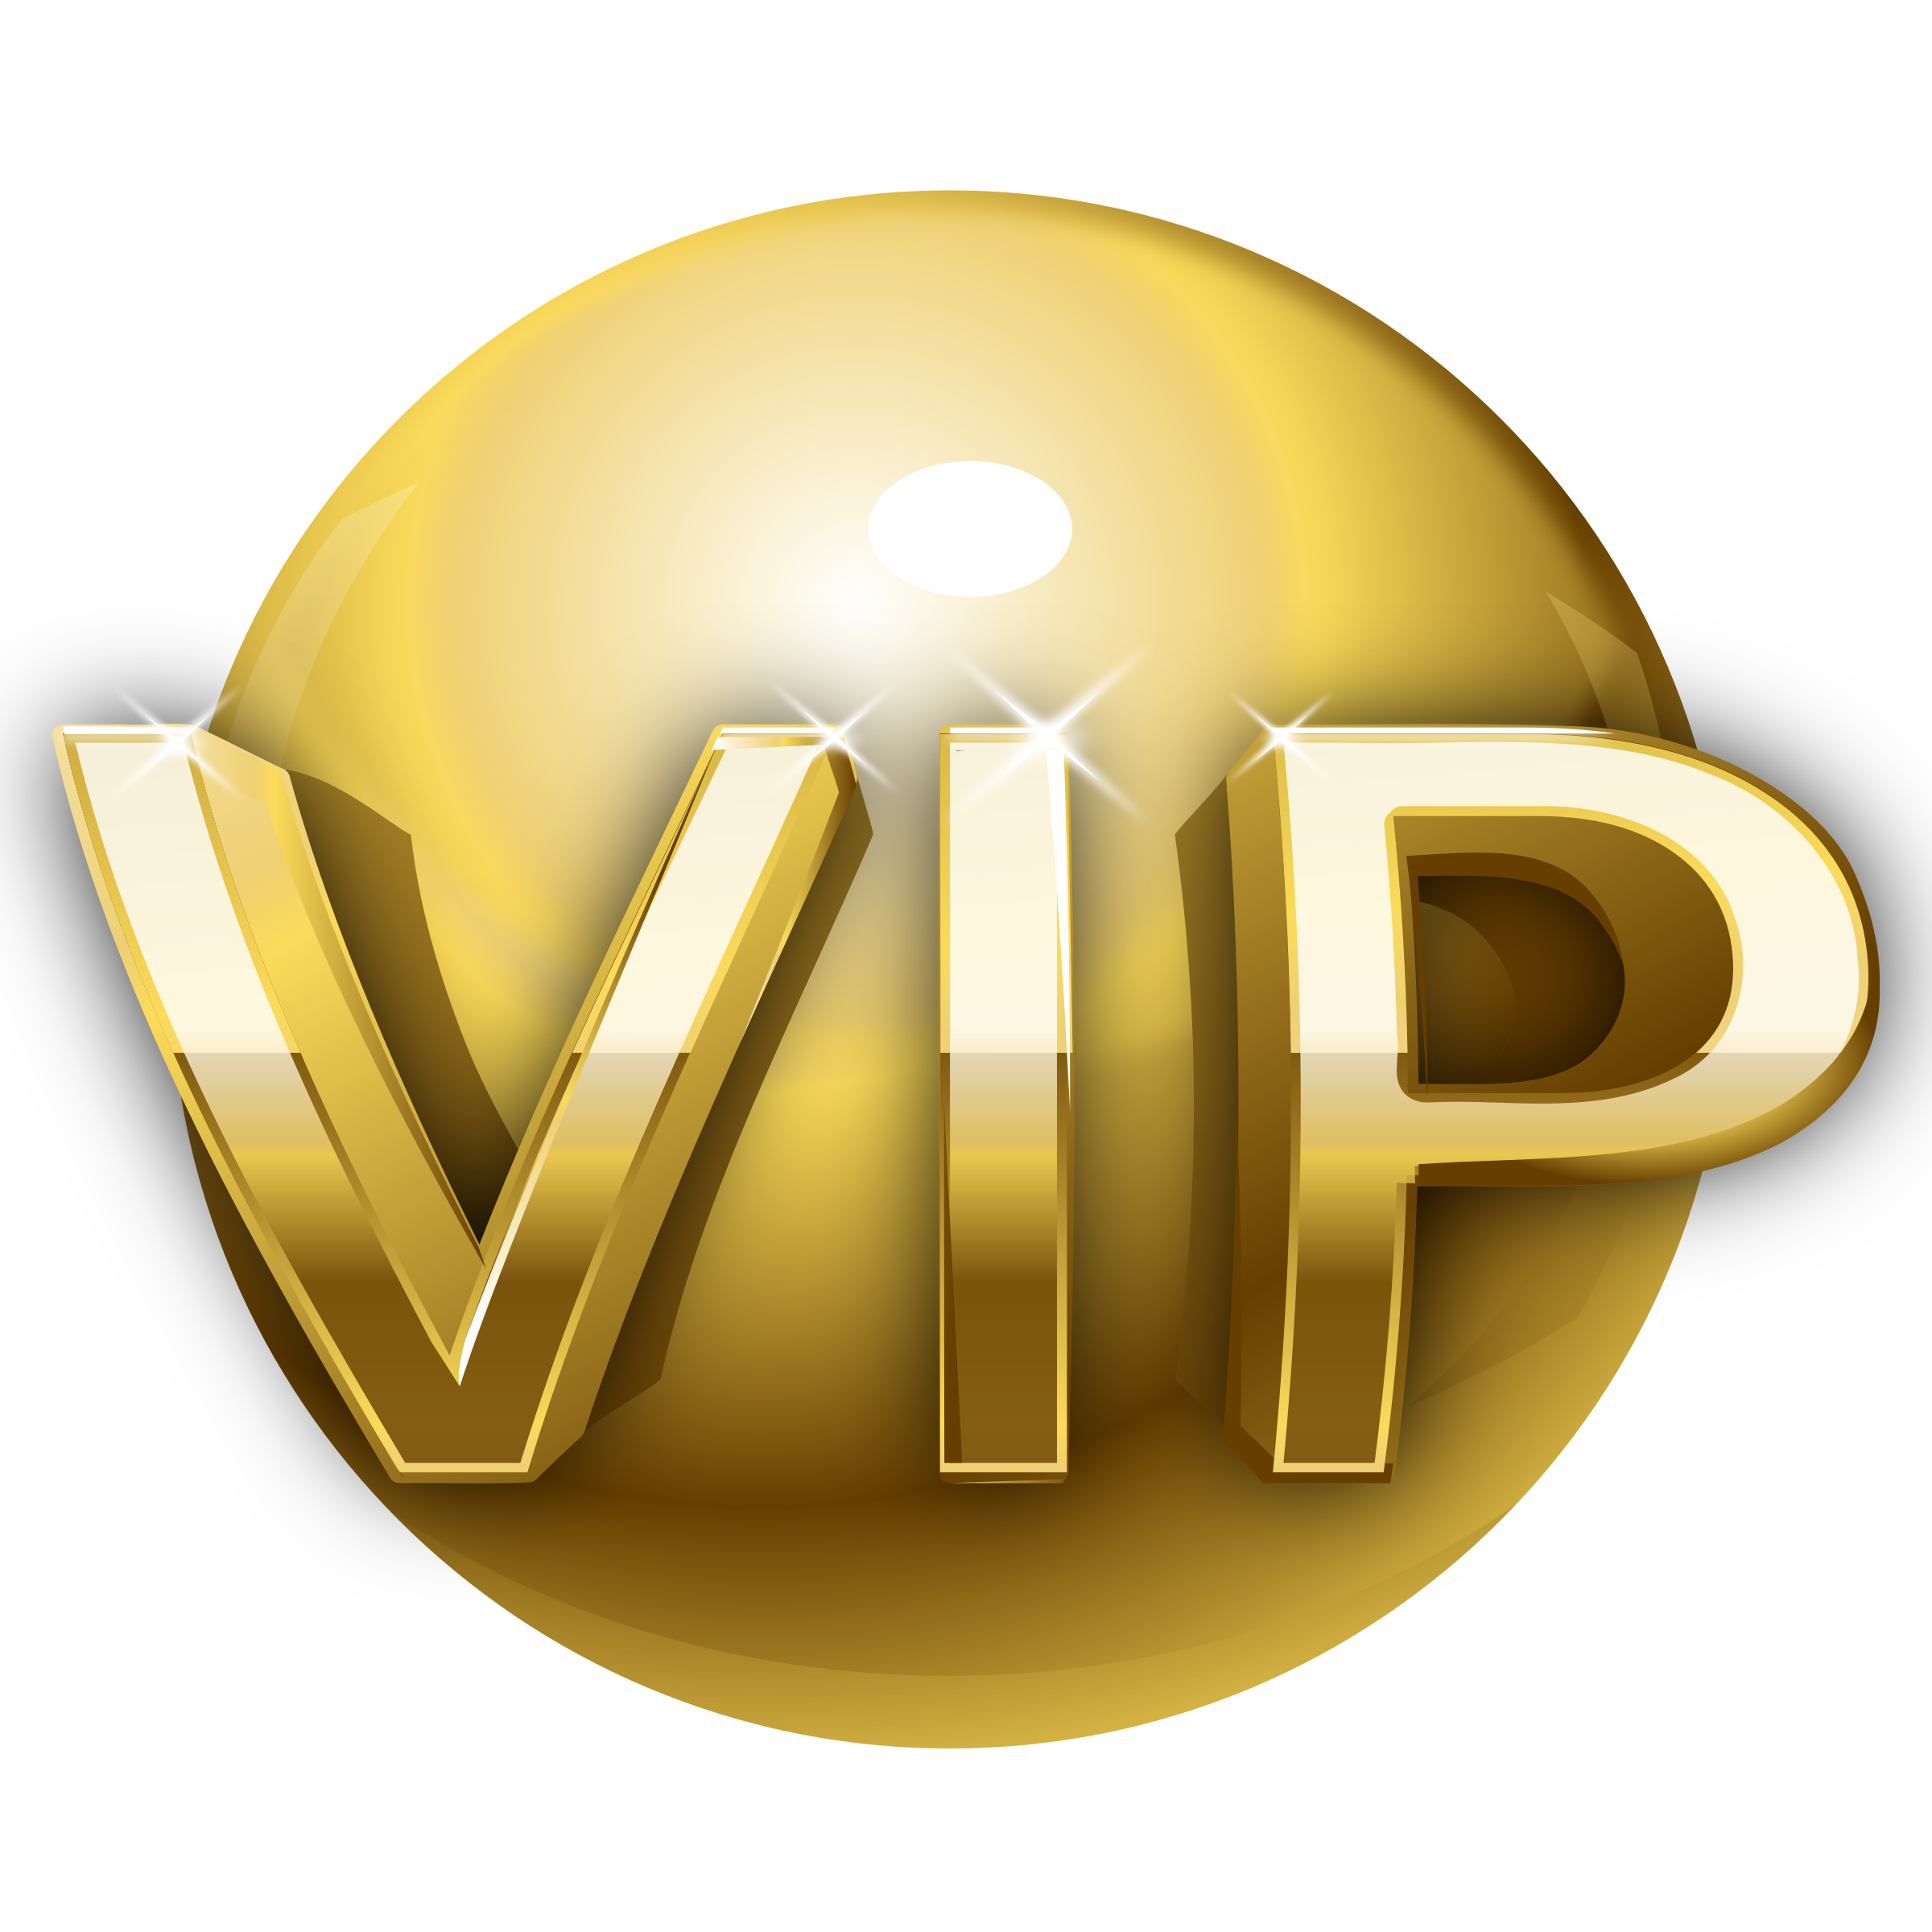 File:VIP clipart.png.